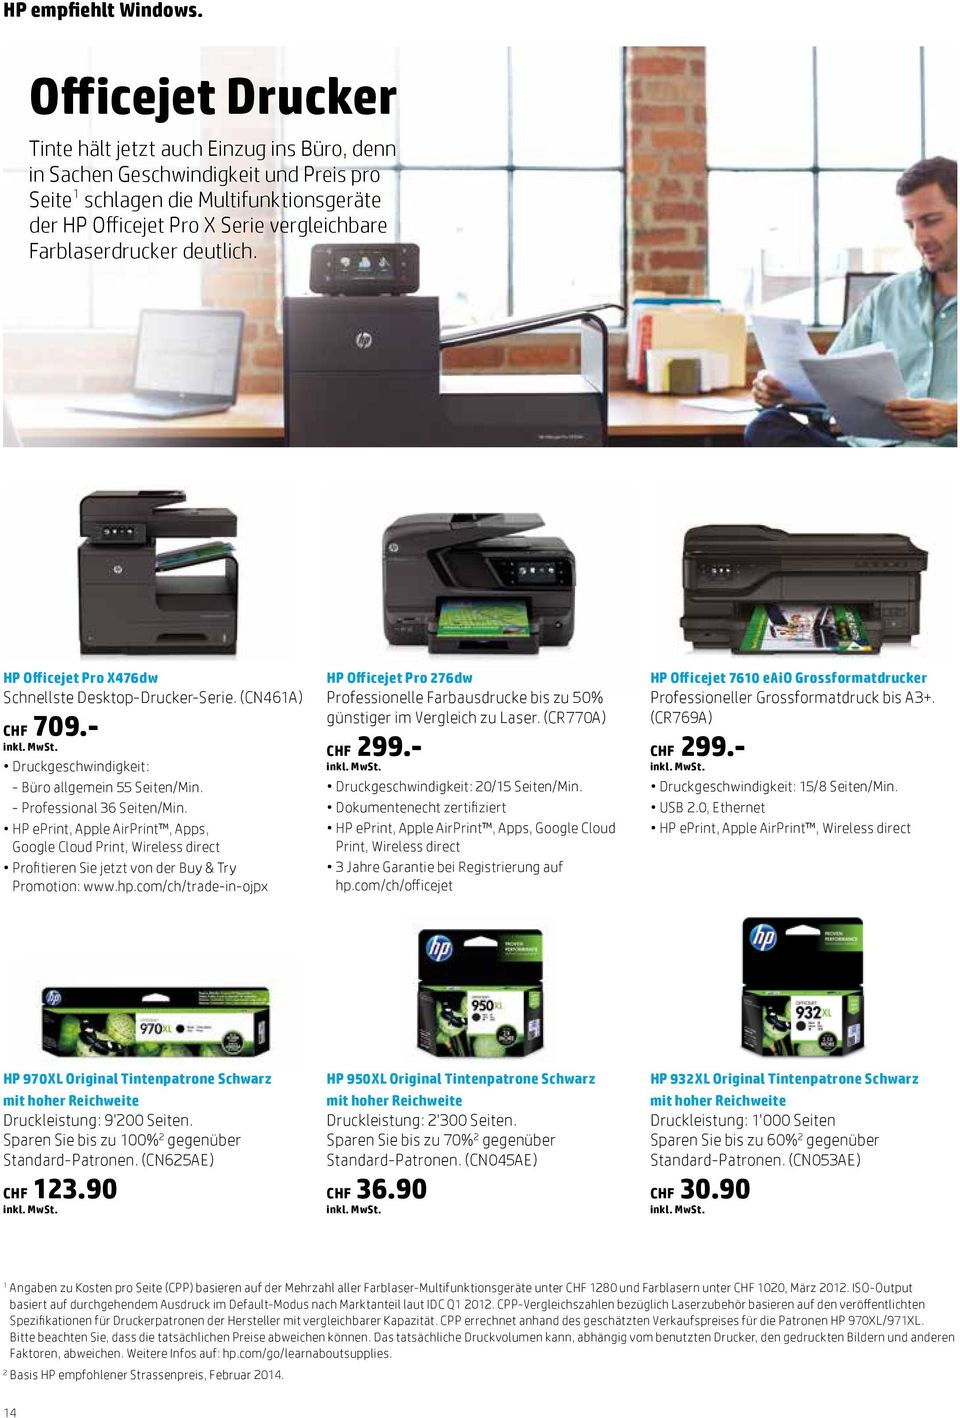 HP eprint, Apple AirPrint, Apps, Google Cloud Print, Wireless direct Profitieren Sie jetzt von der Buy & Try Promotion: www.hp.